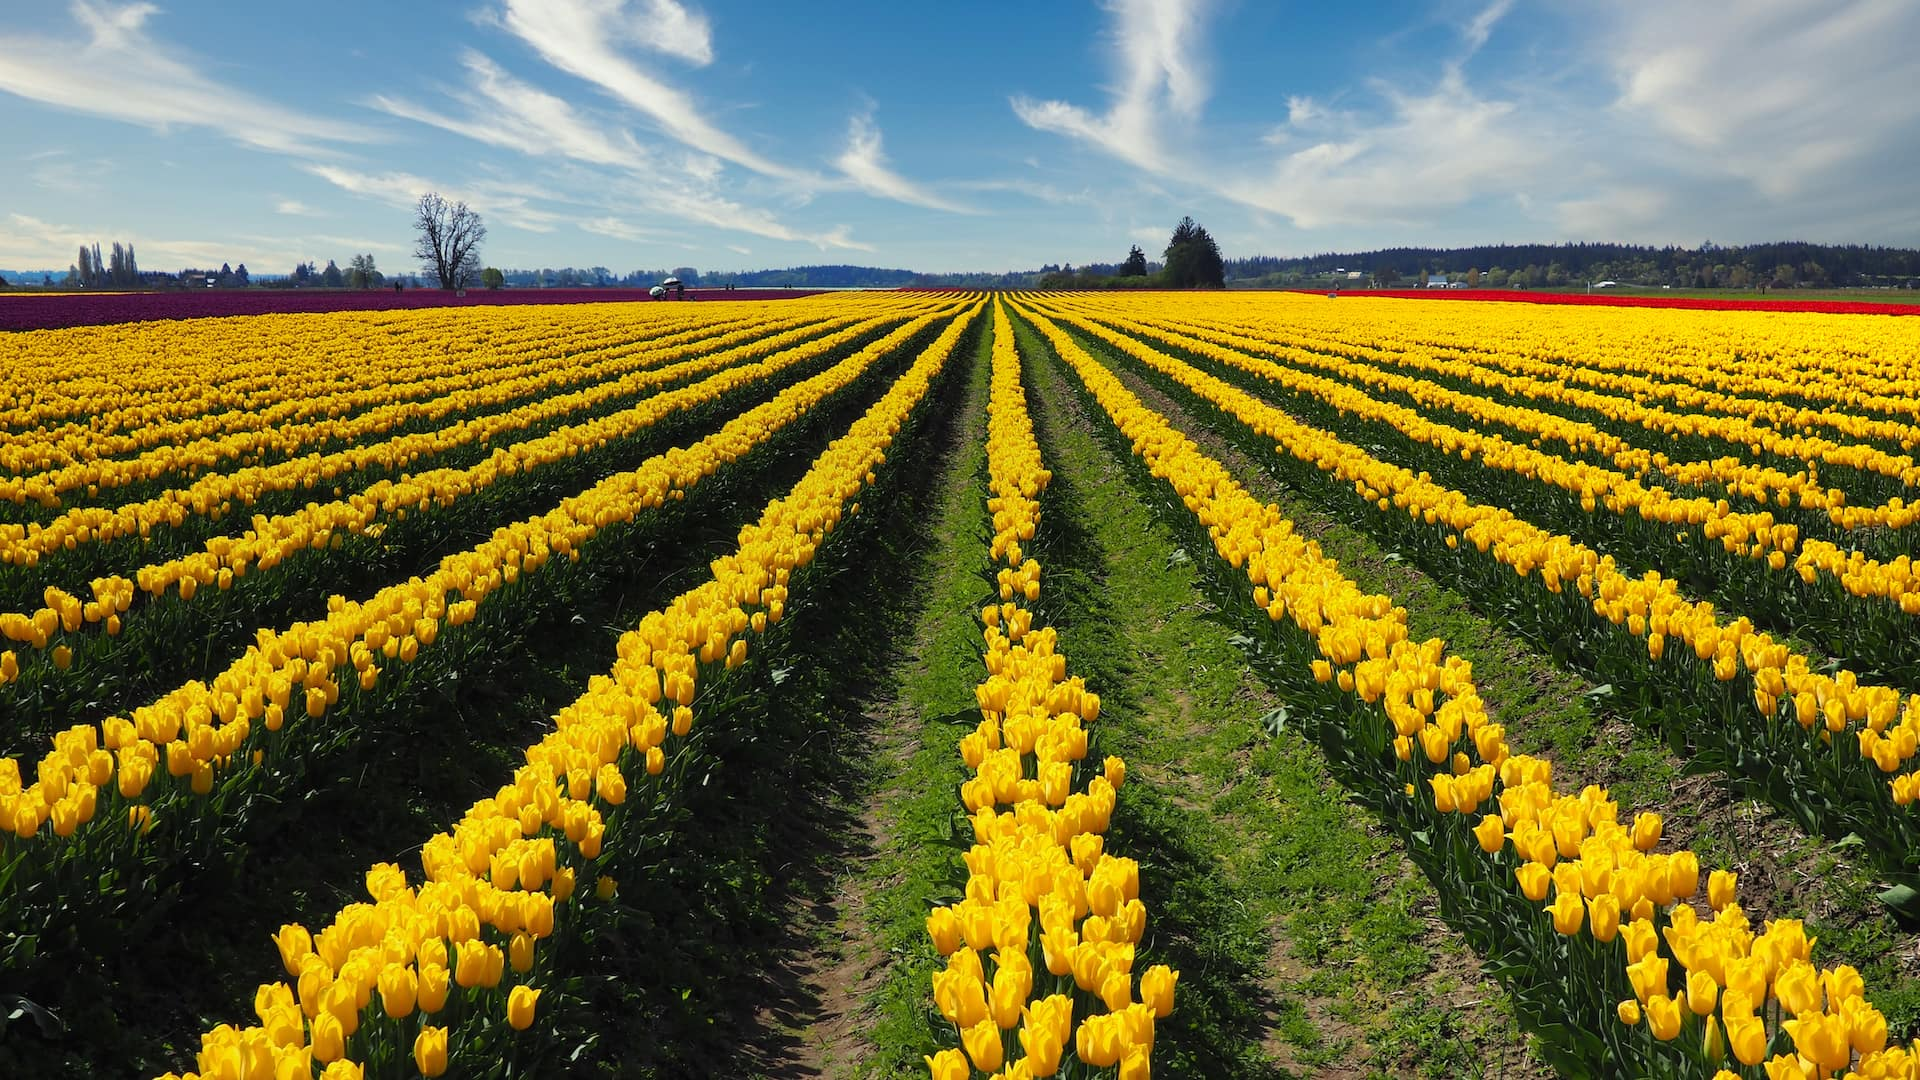 Rows of yellow flowers lead into the background